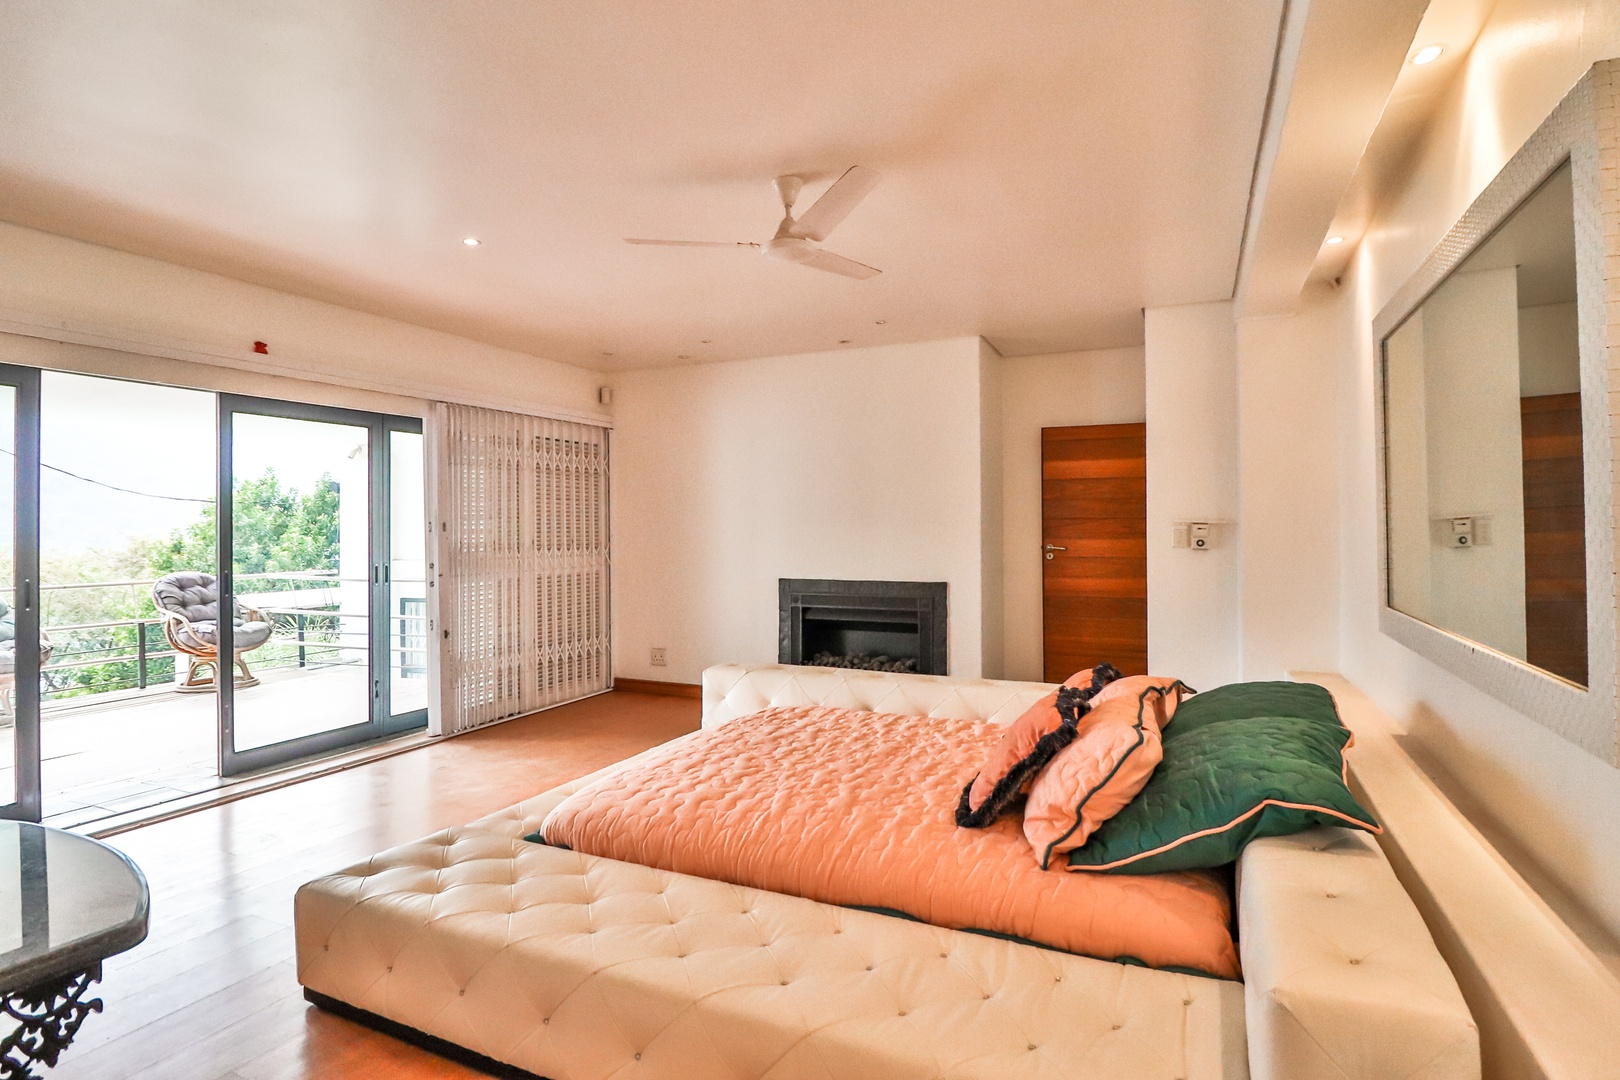 House in Kosmos Village - Main bedroom with patio and views